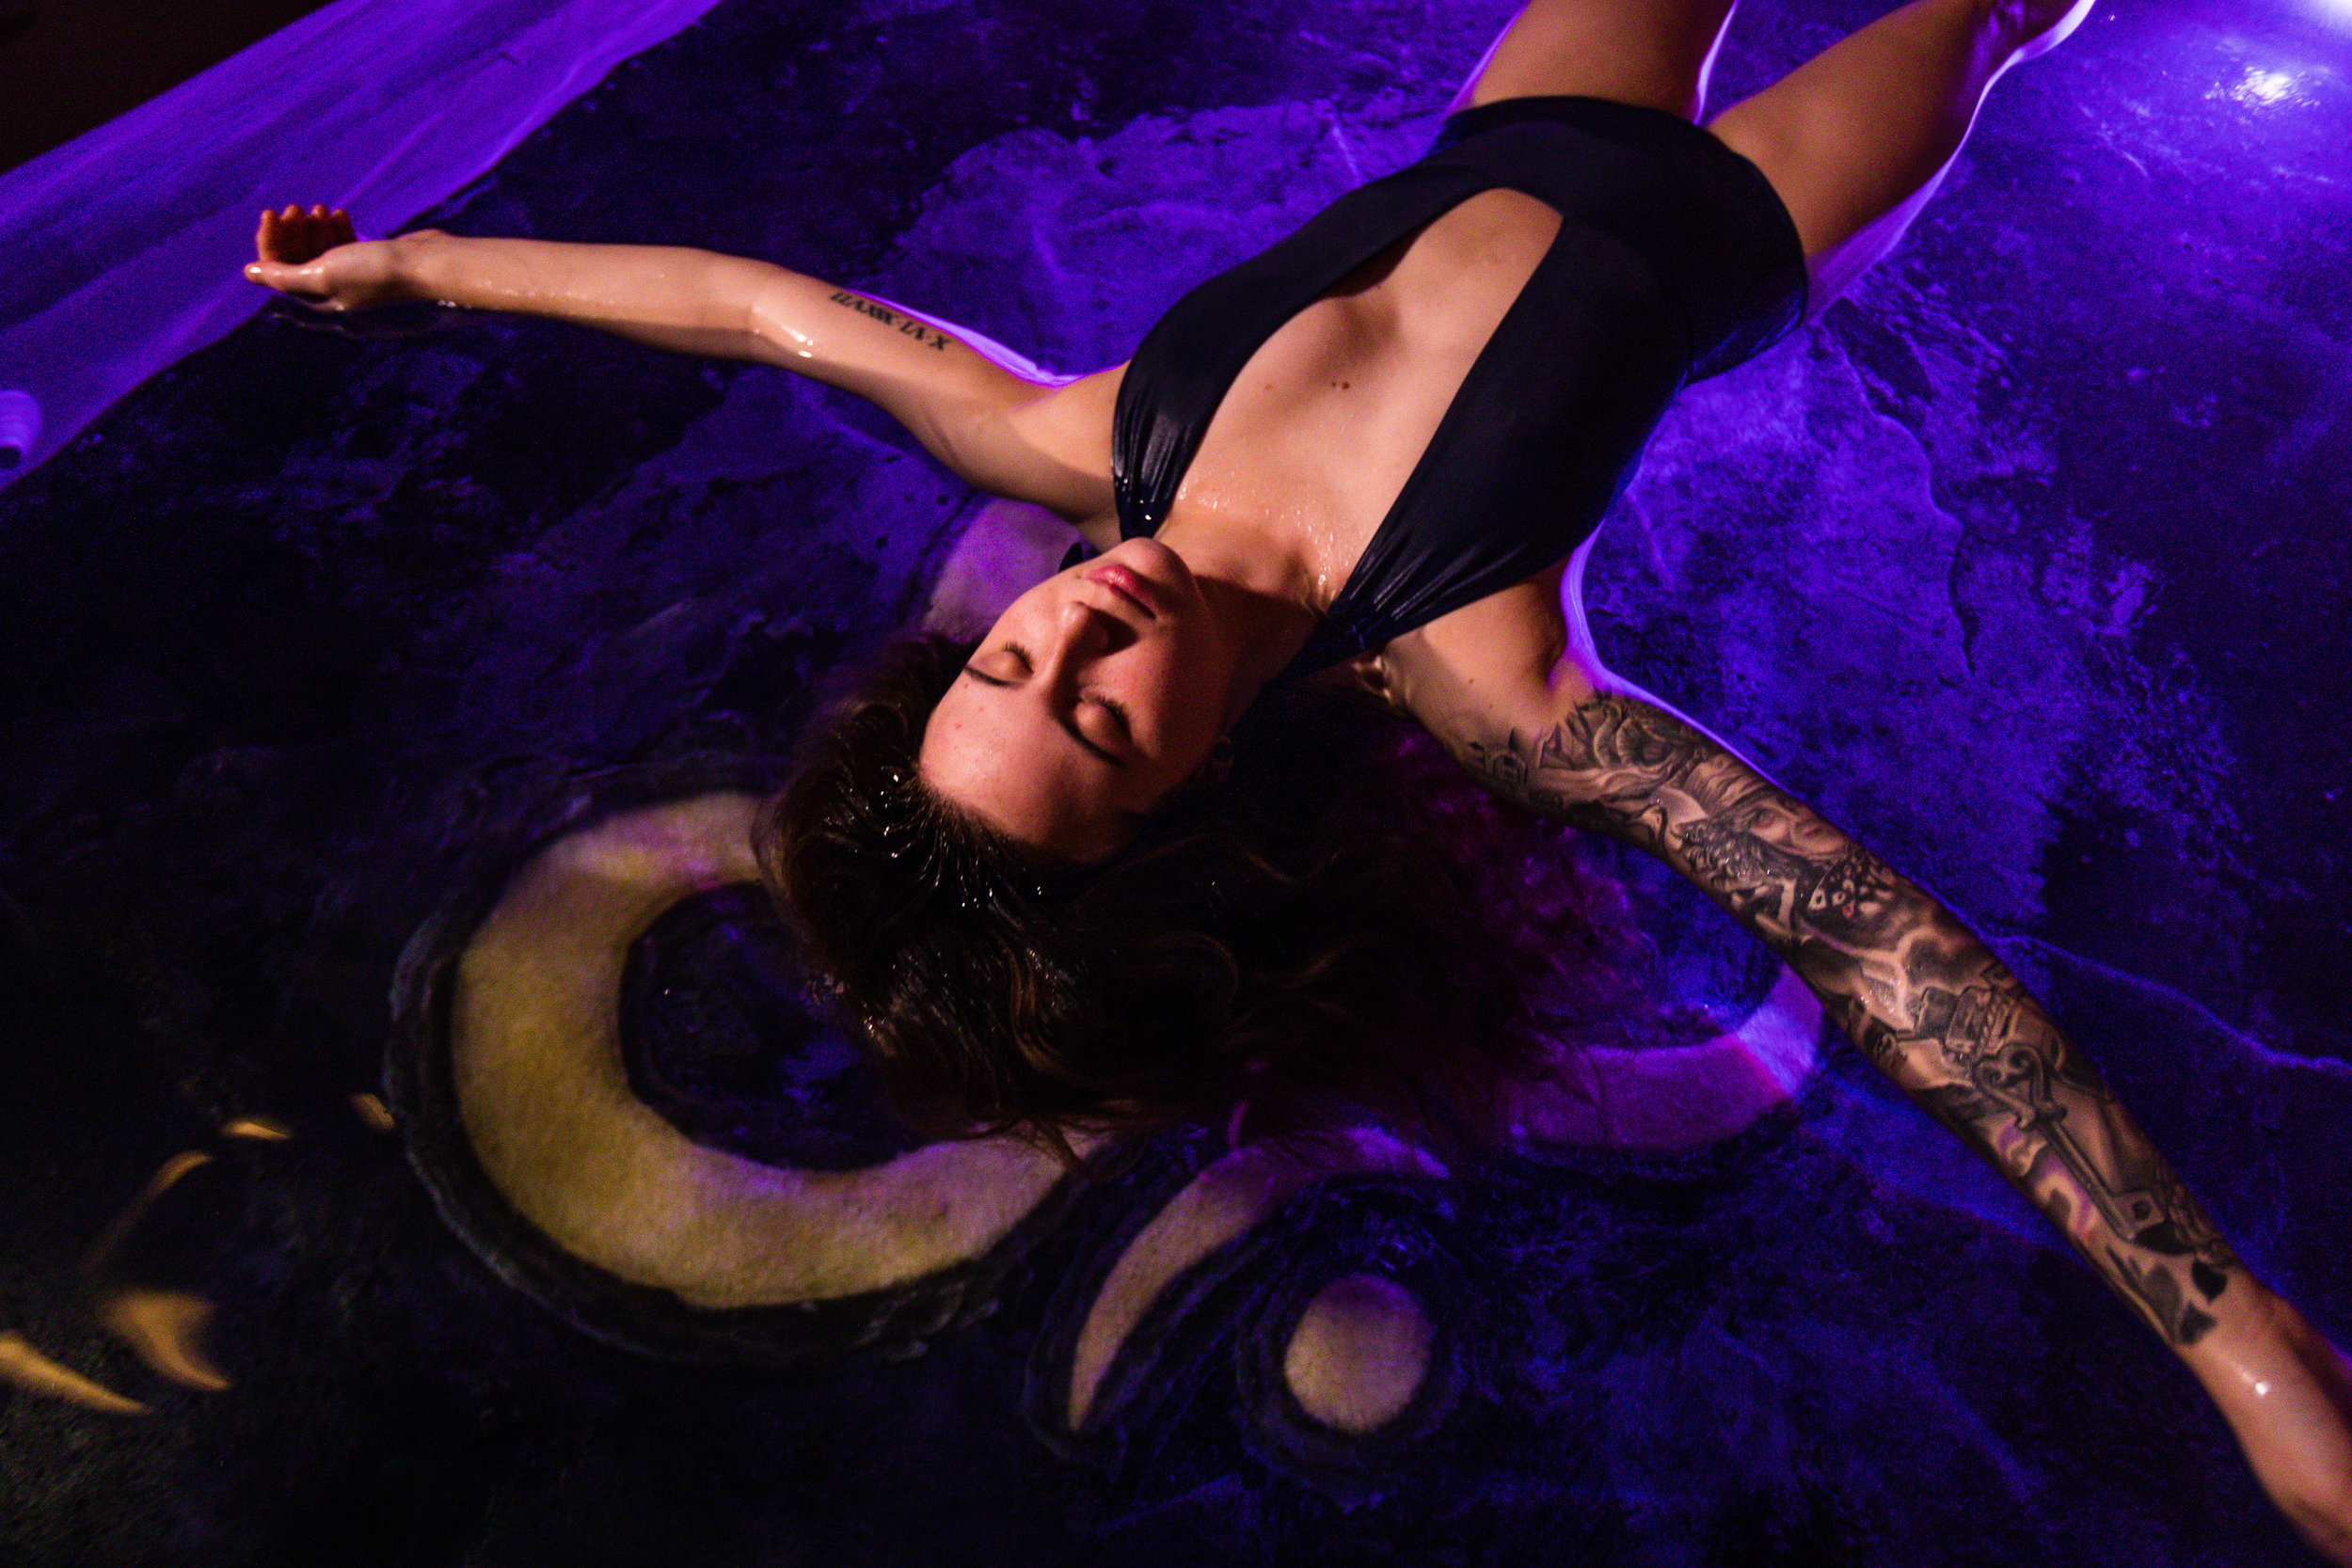 Flotation therapy and sensory deprivation at Float SNJ in Marlton, NJ